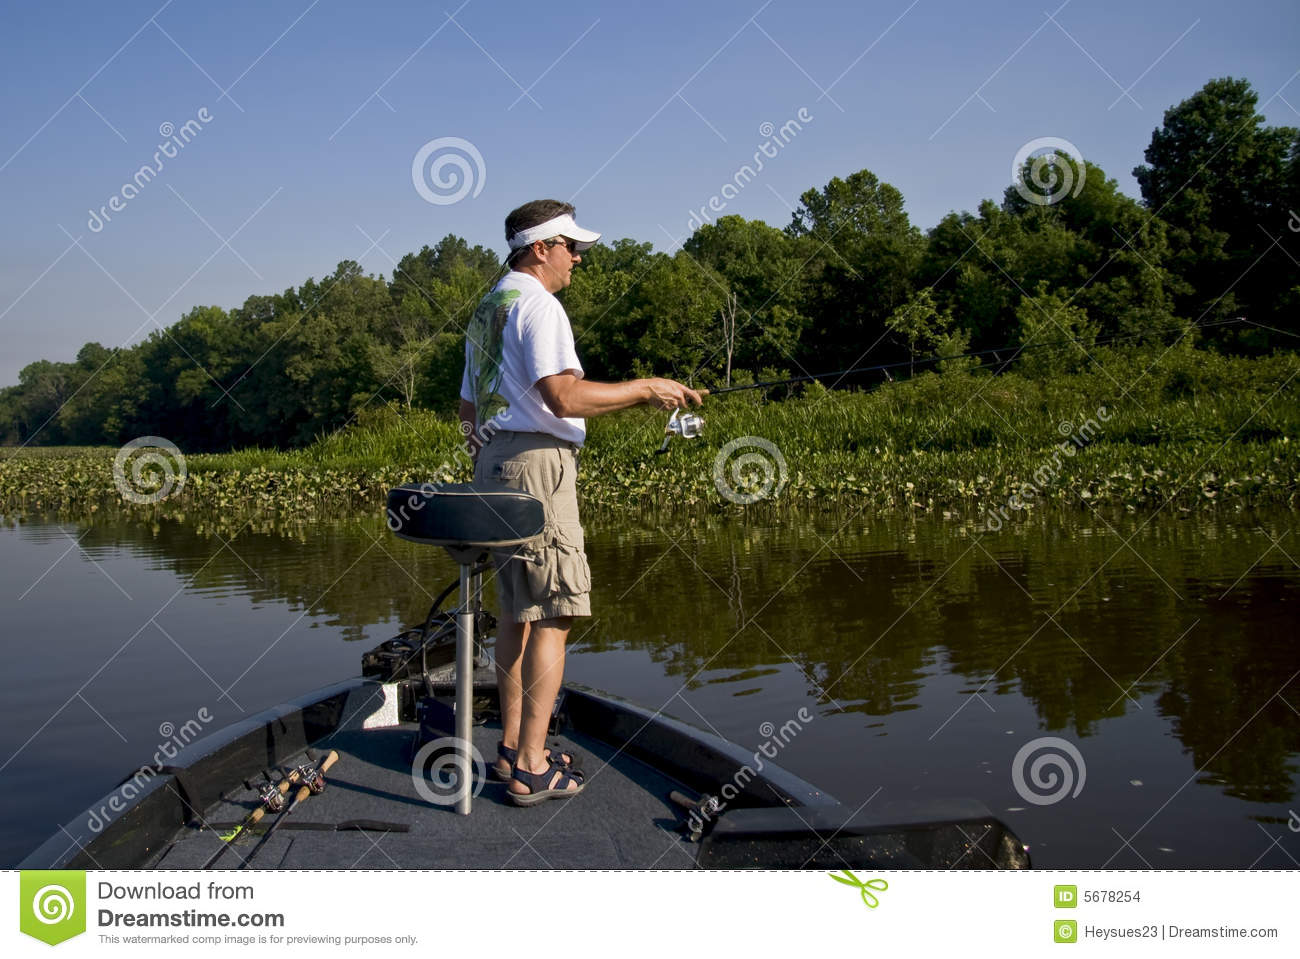 Fishing in the river stock photo  Image of large, boating